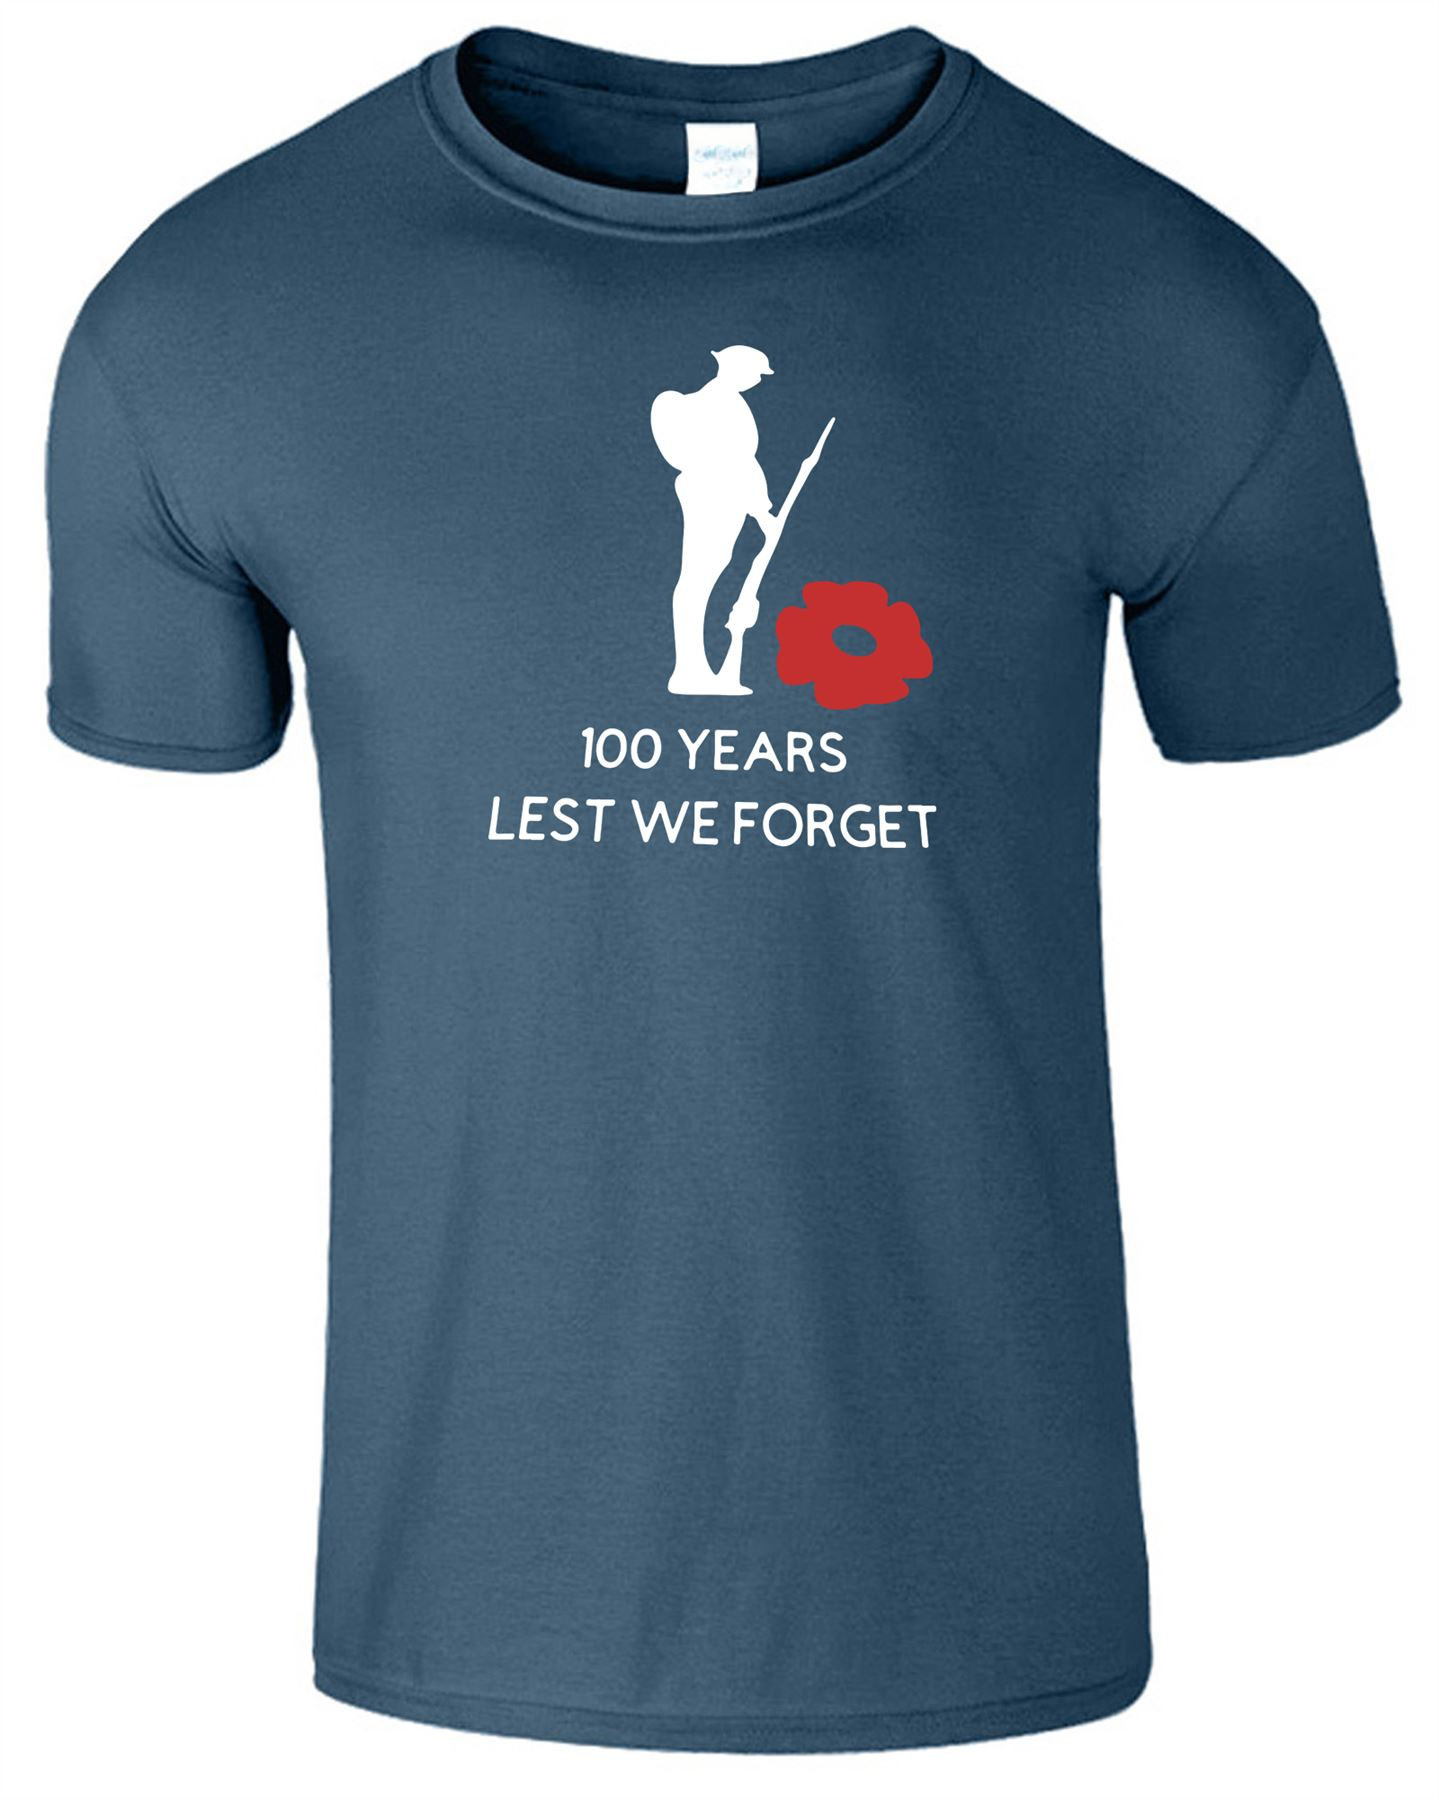 Soldiers Remembrance Day Mens T-Shirt Lest We Forget Womens Gift Top T Shirt